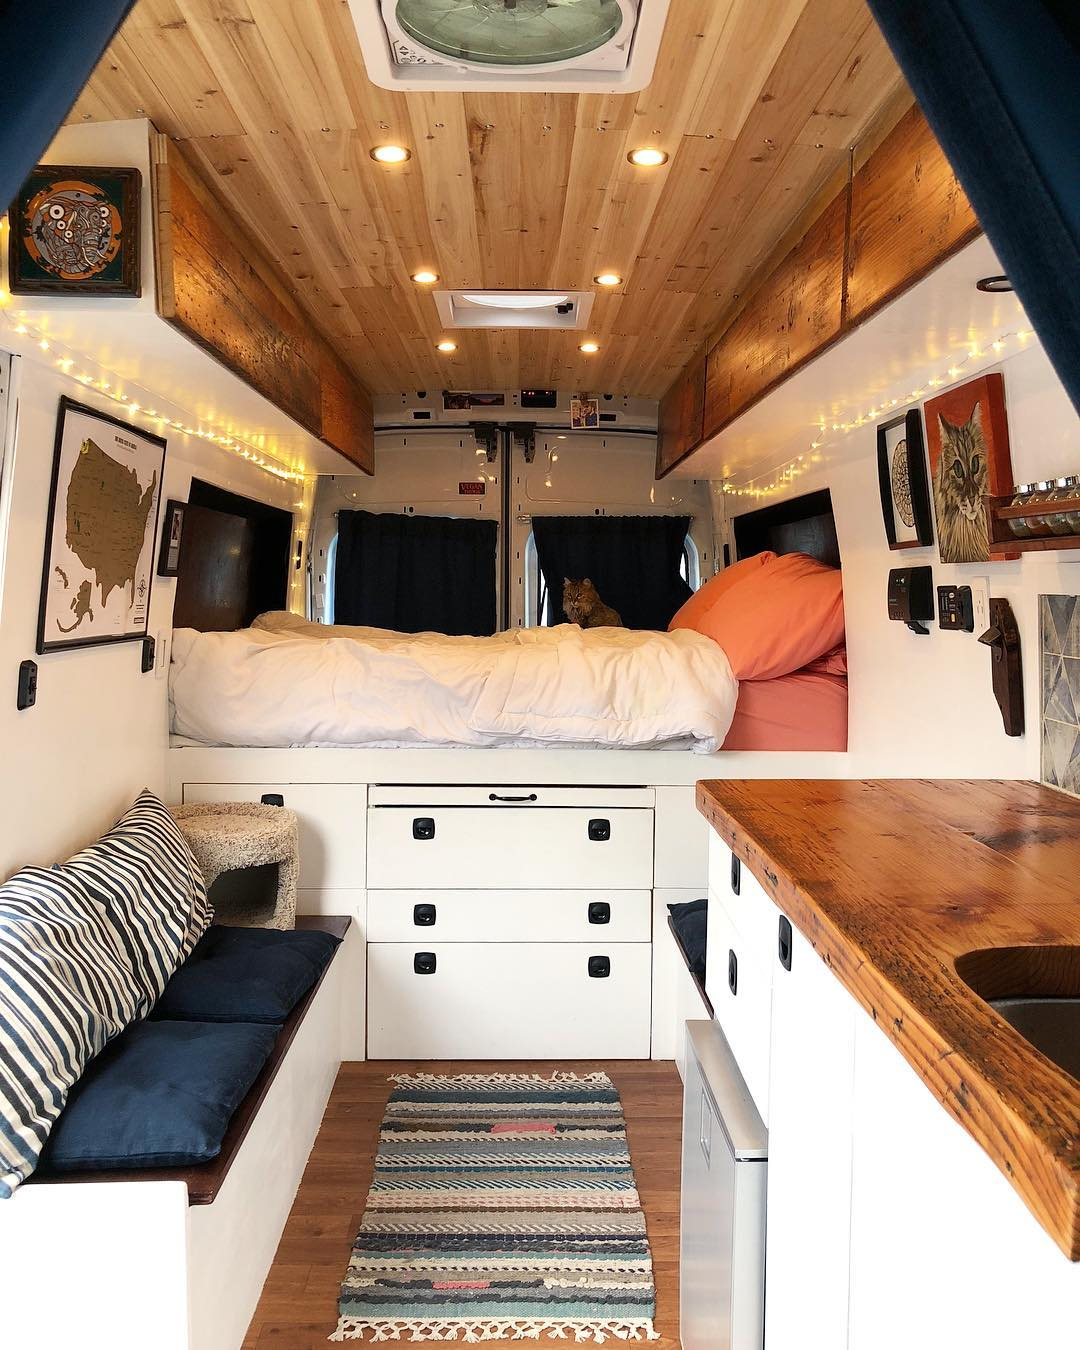 Living in a ford transit camper conversion